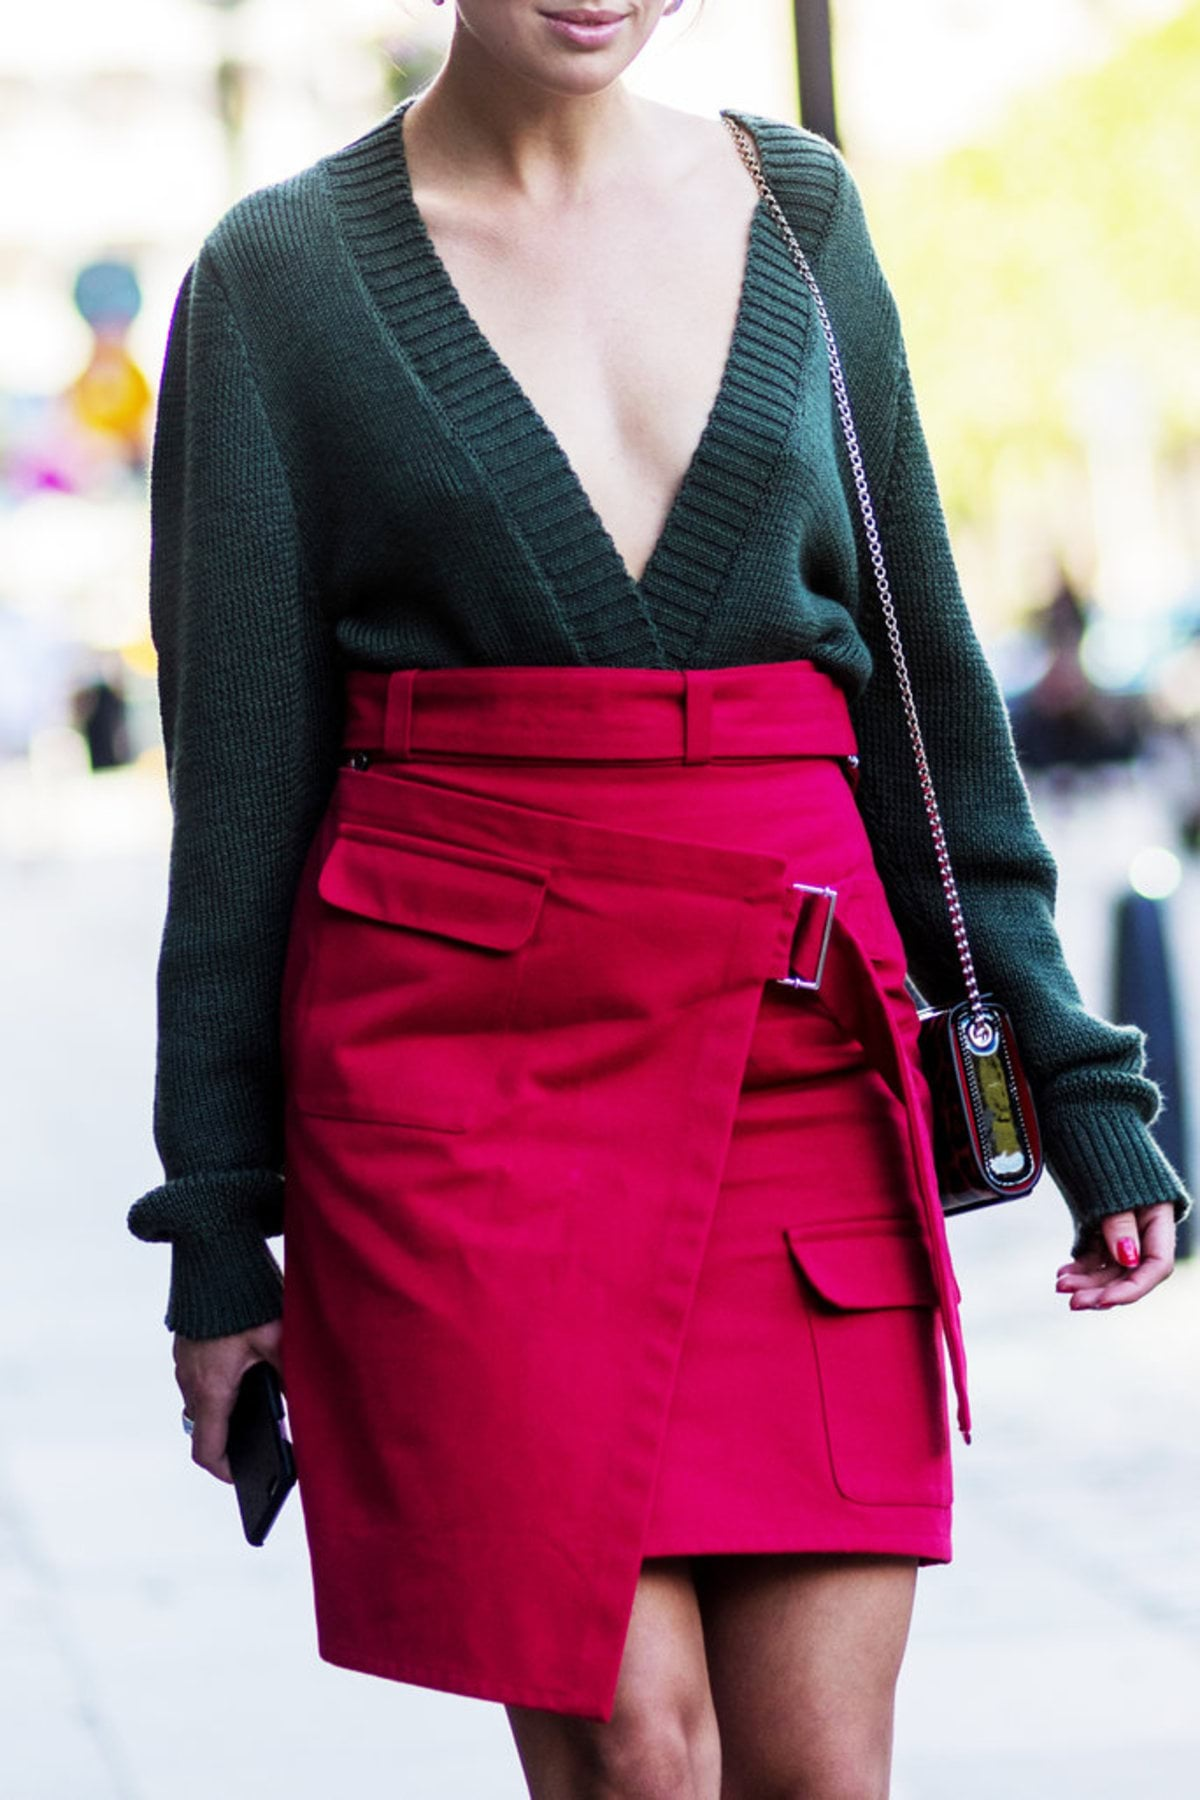 120816-red-green-street-style-8